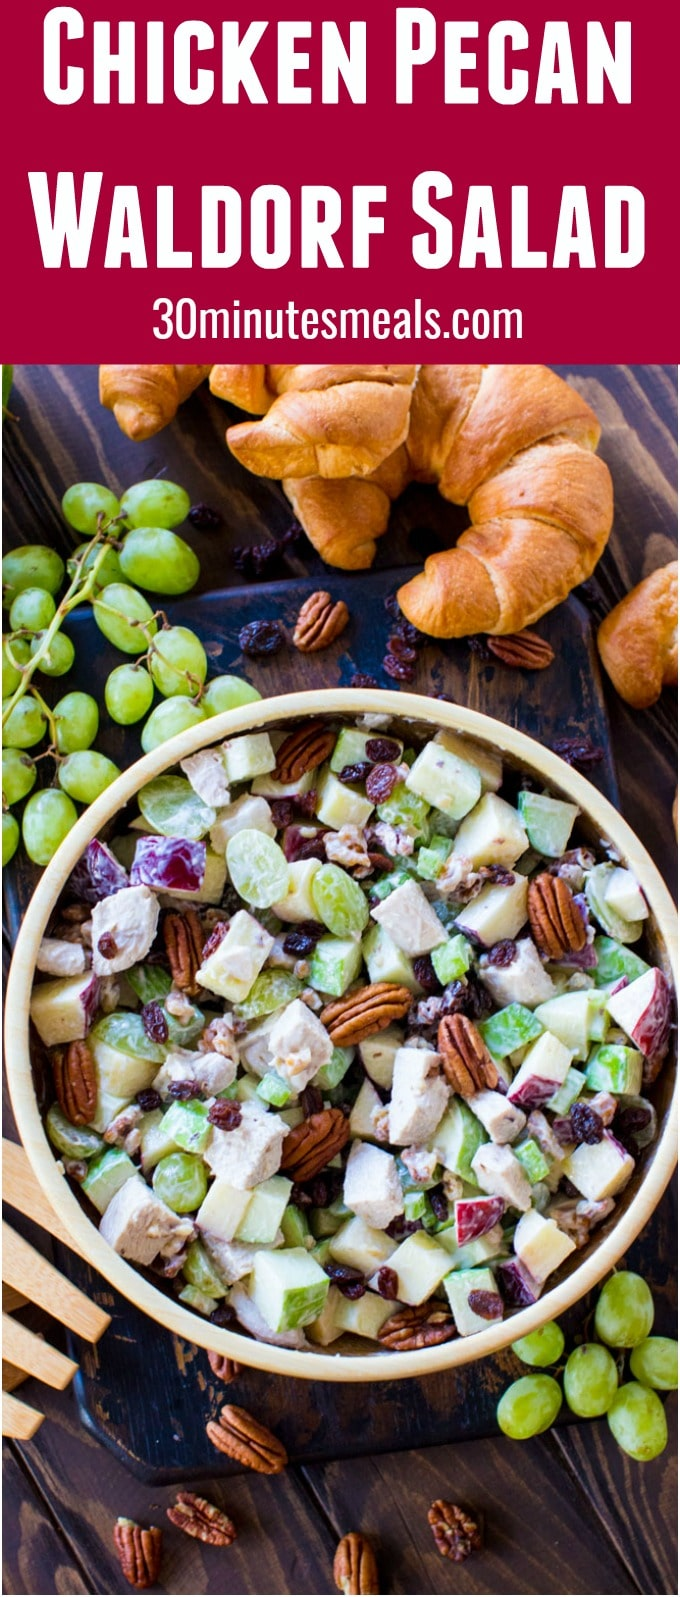 Crunchy Chicken Waldorf Salad is the perfect combination of sweet and savory. Crispy apples, juicy grapes and crunchy nuts are combined to create the perfect bite!